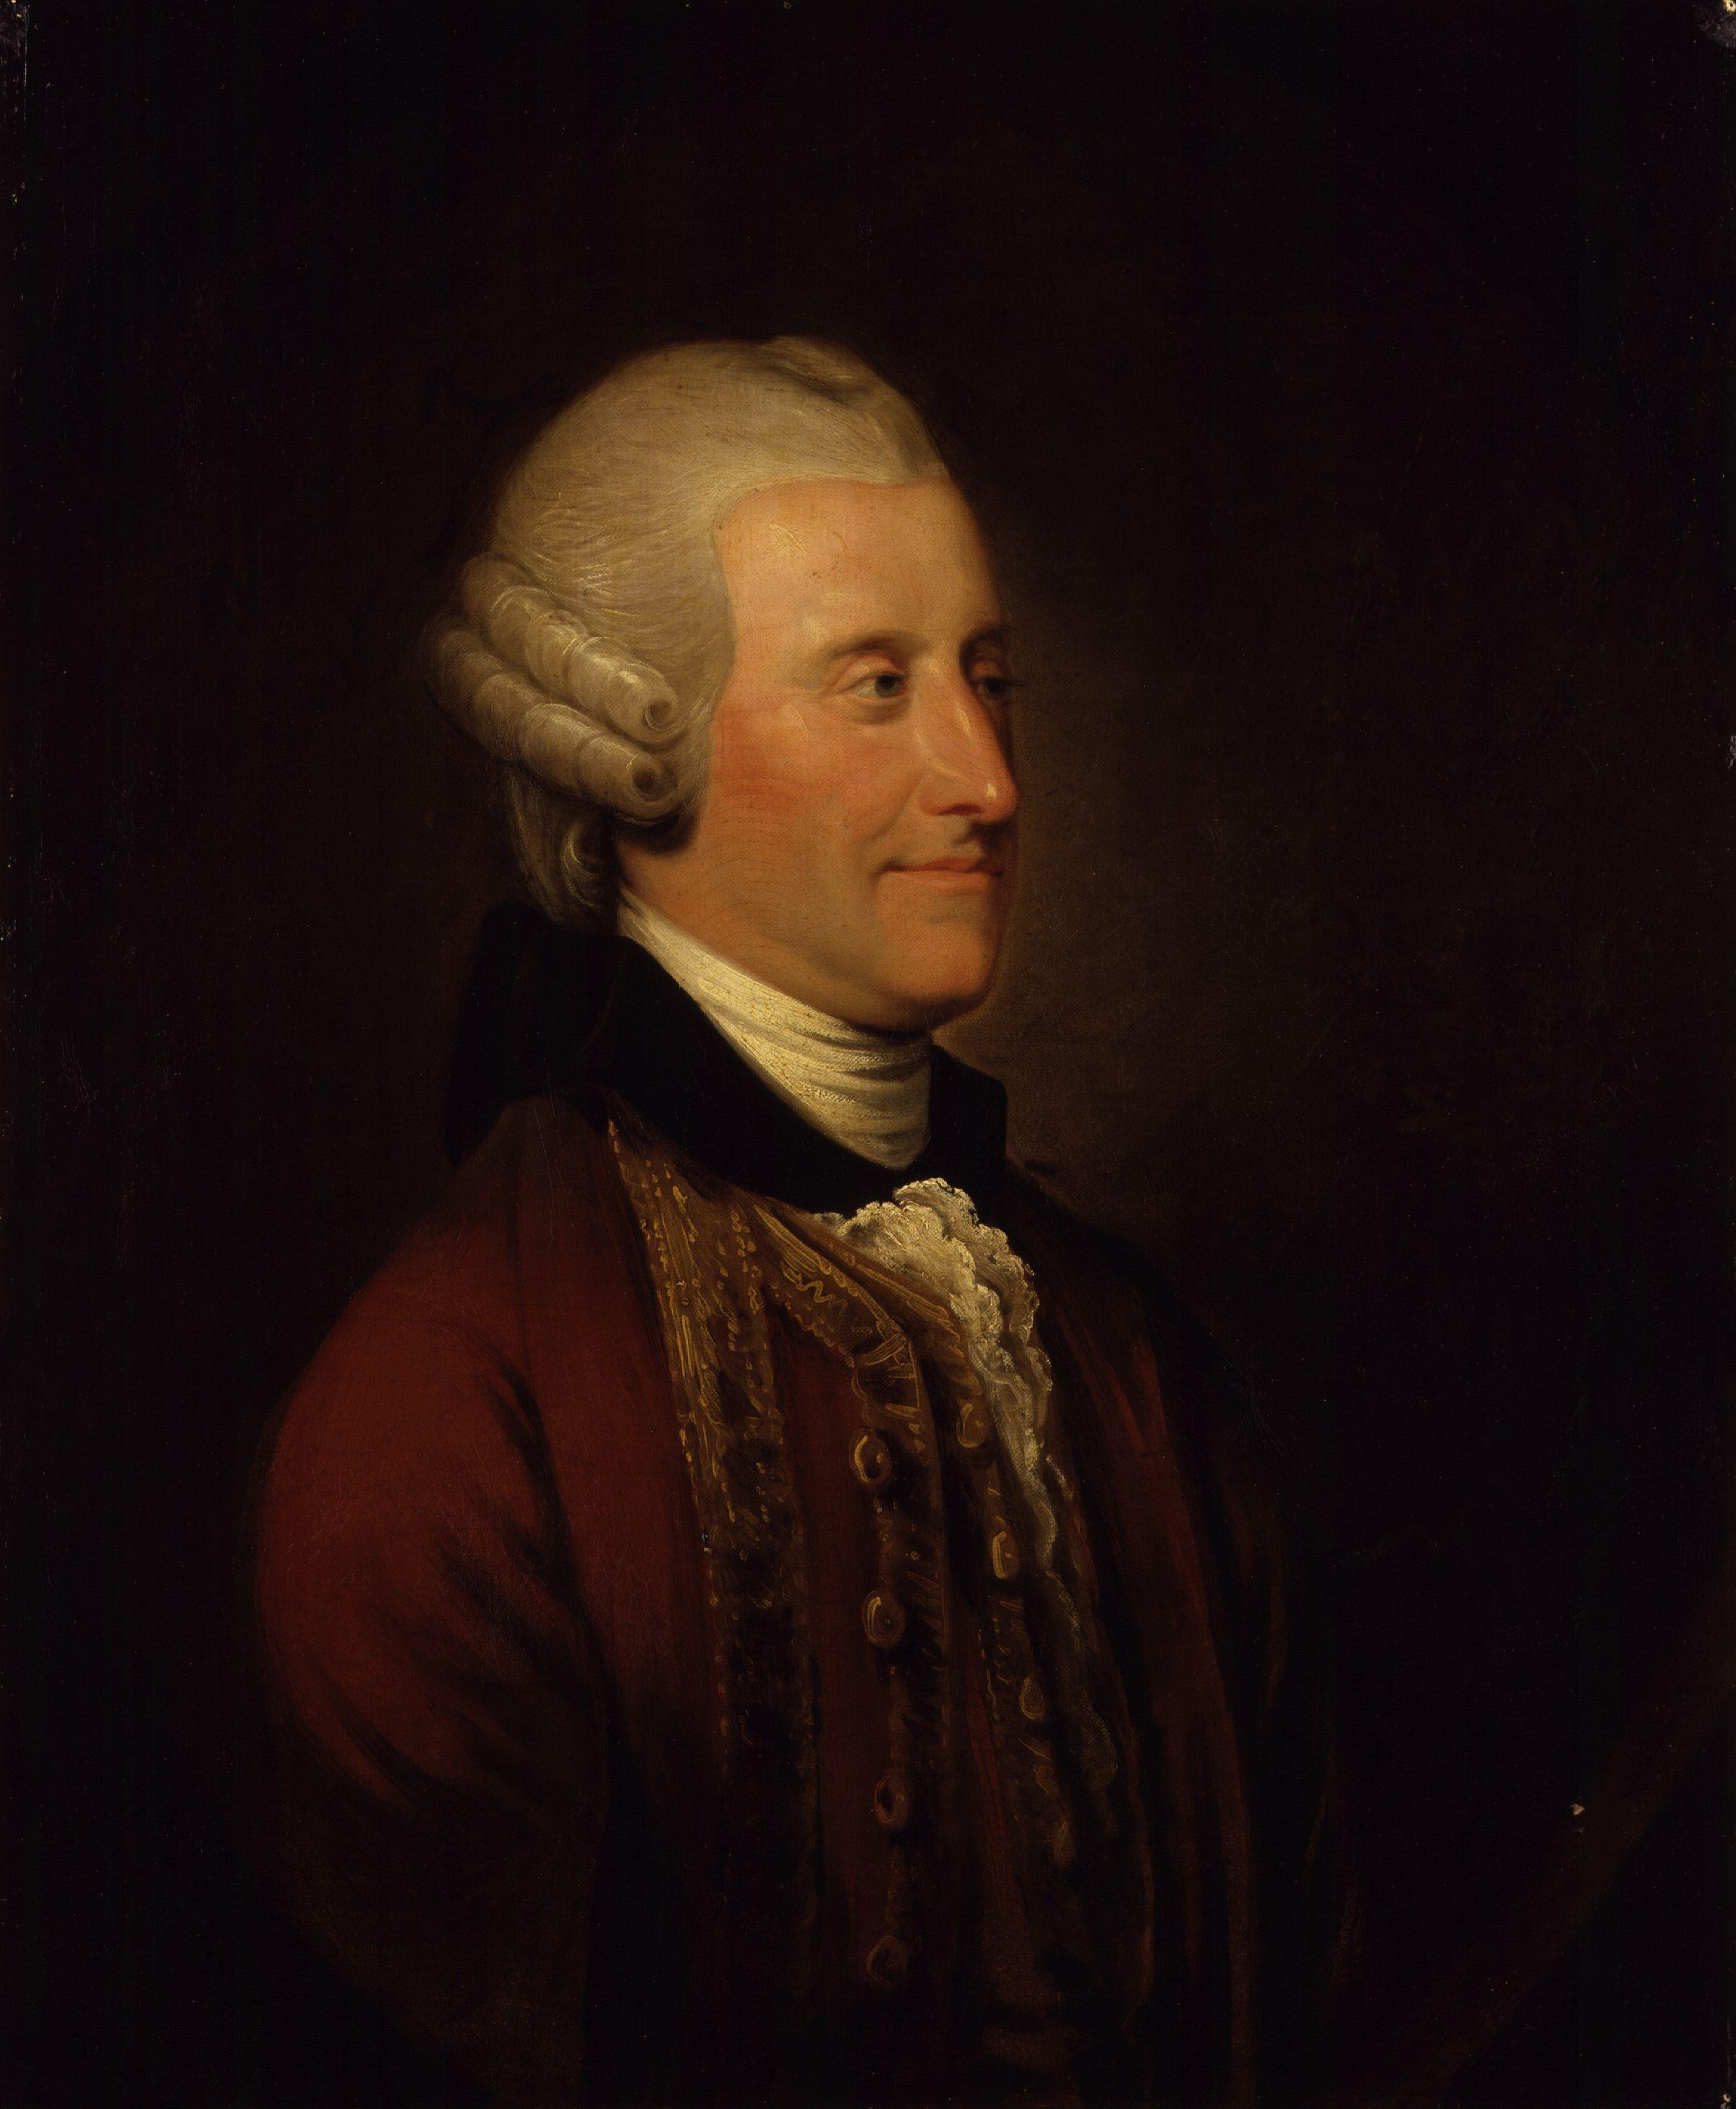 John Montagu, 4th Earl of Sandwich FileJohn Montagu 4th Earl of Sandwich by Johann Zoffany